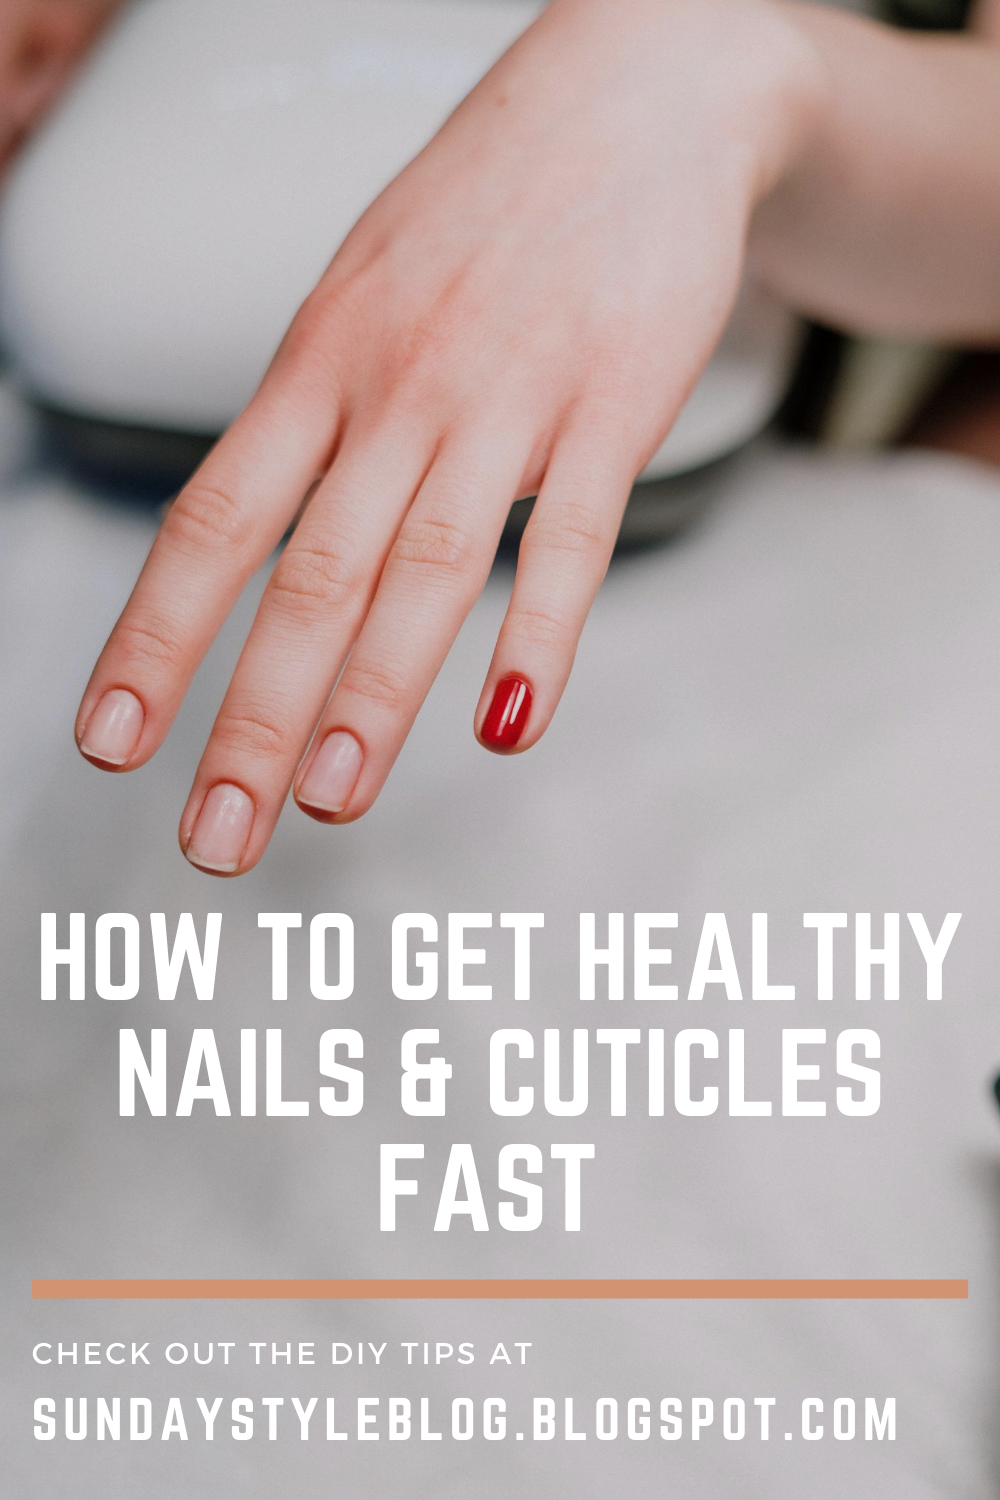 How To Get Healthy Nails And Cuticles Fast In 2020 Healthy Nails Nail Care Tips Healthy Nail Care